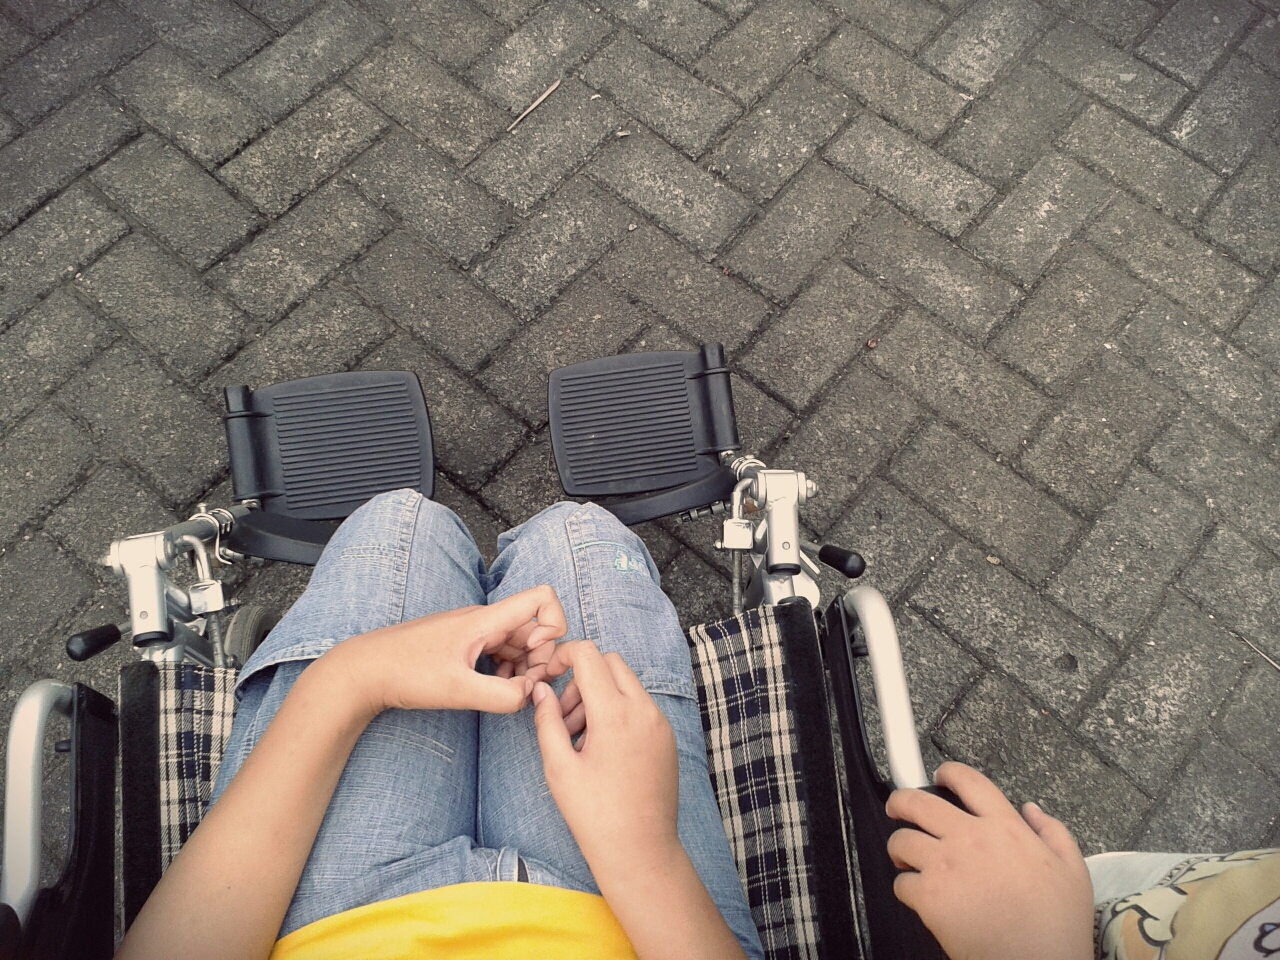 No Facebook, disabled people are not 'disturbing'